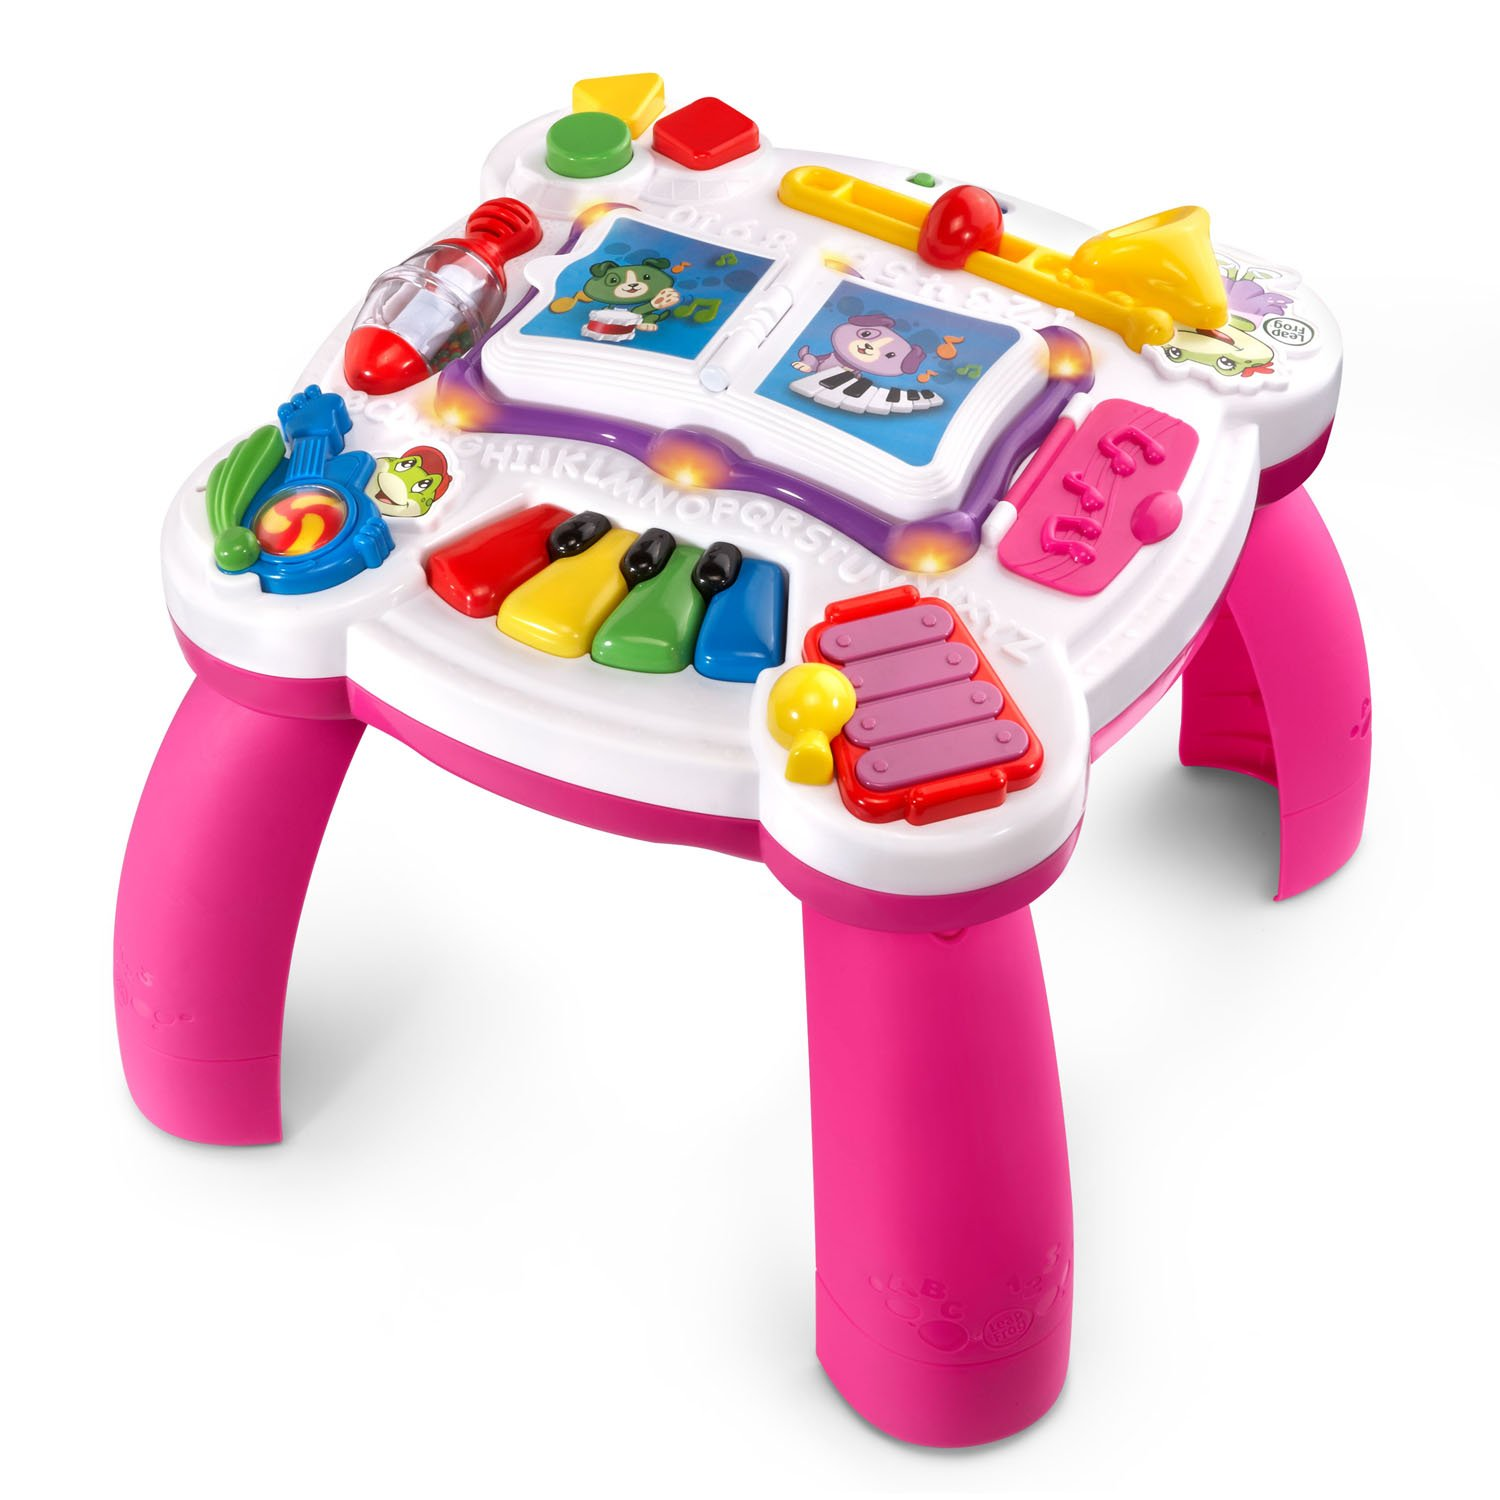 LeapFrog Learn and Groove Musical Table Activity Center Amazon Exclusive, Pink by LeapFrog